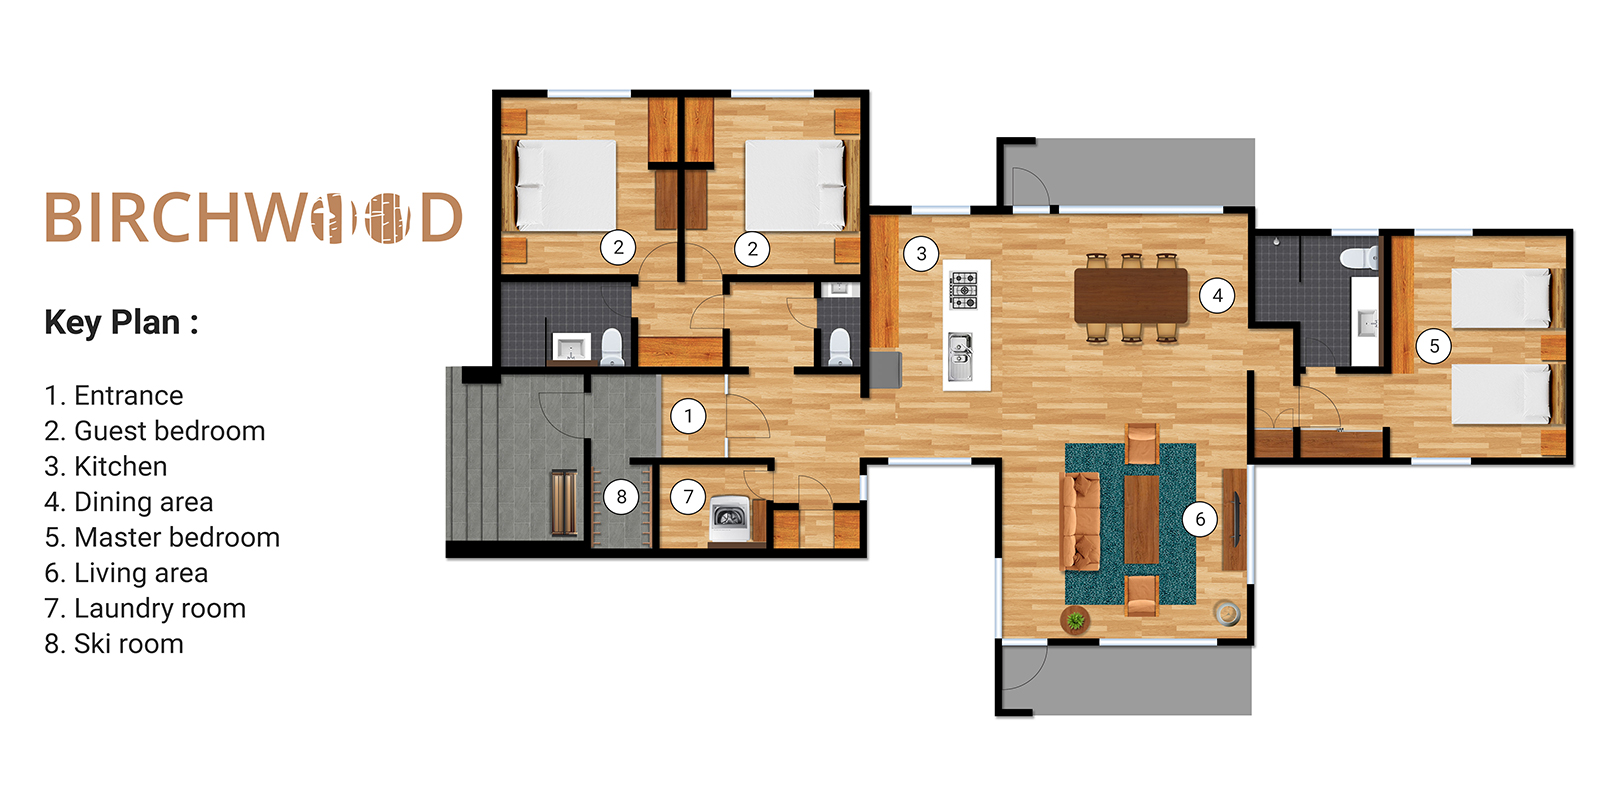 Birchwood Floor Plan | Hirafu, Niseko